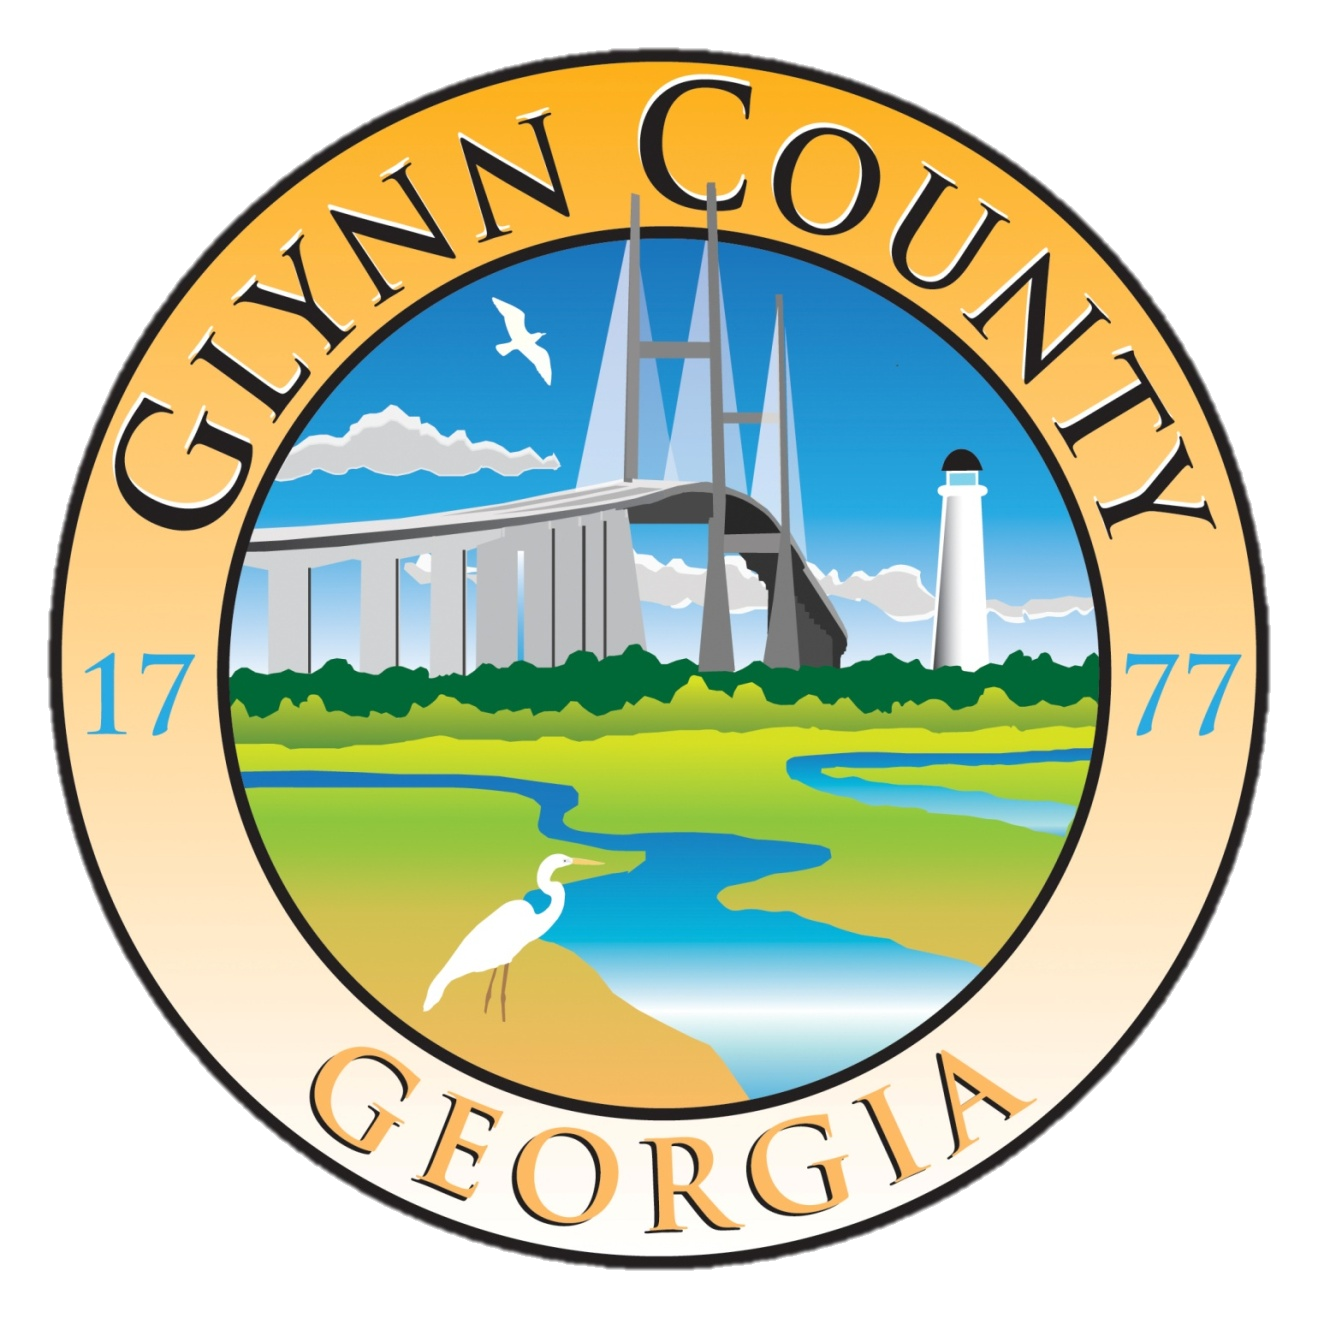 Glynn County Board of Commissioners logo